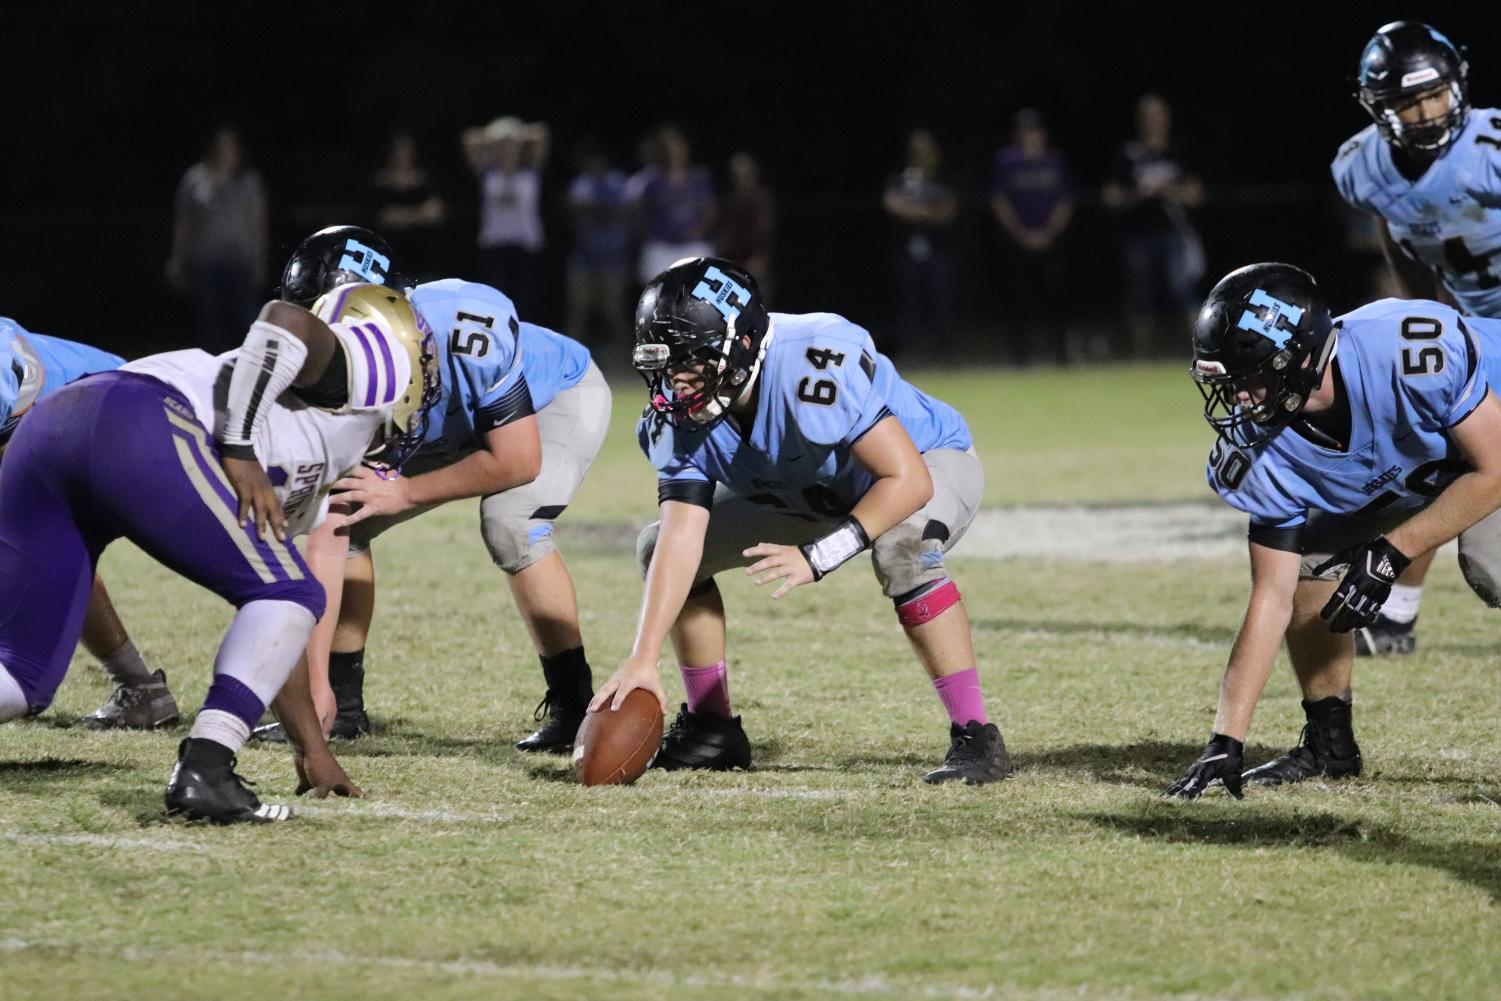 Sophomore center Chase Horne prepares to snap the ball to junior quarterback J.J. Baird